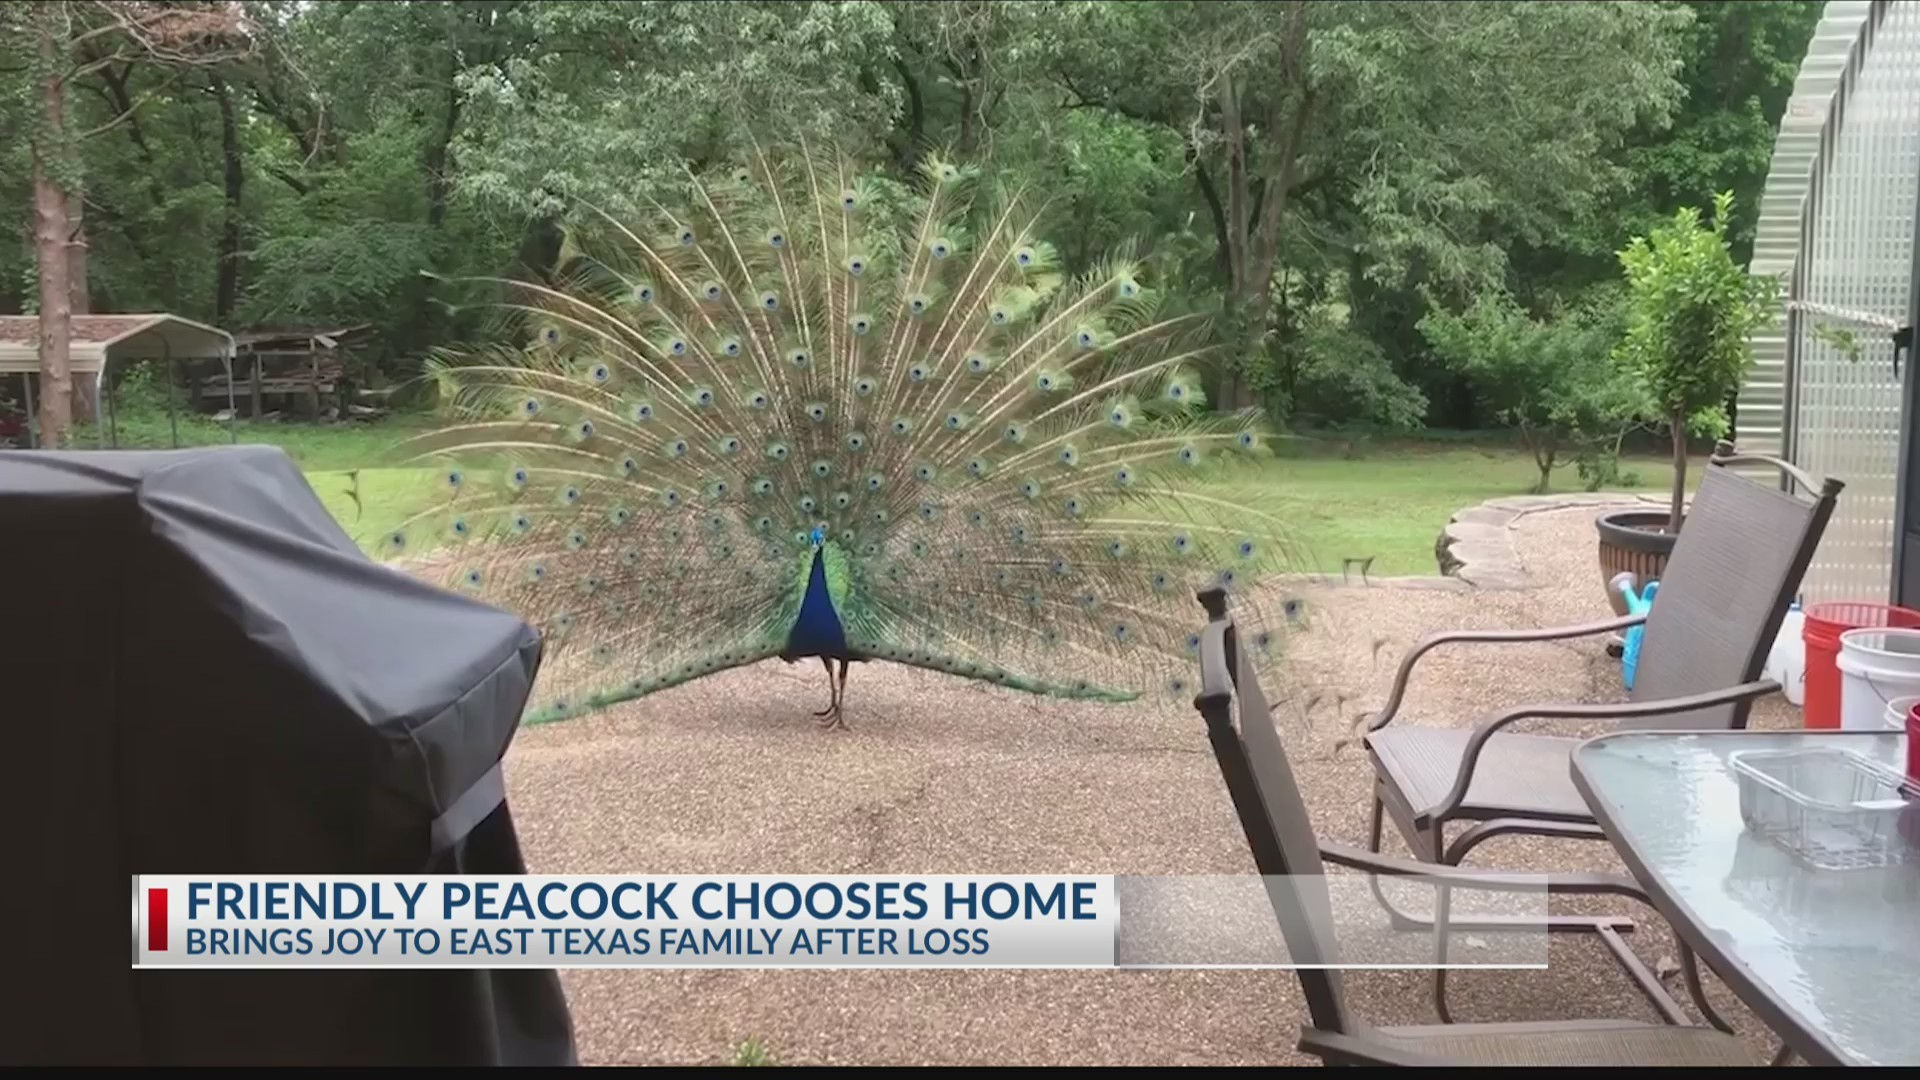 Friendly_Peacock_chooses_East_Texas_fami_0_20190514231918-3156084